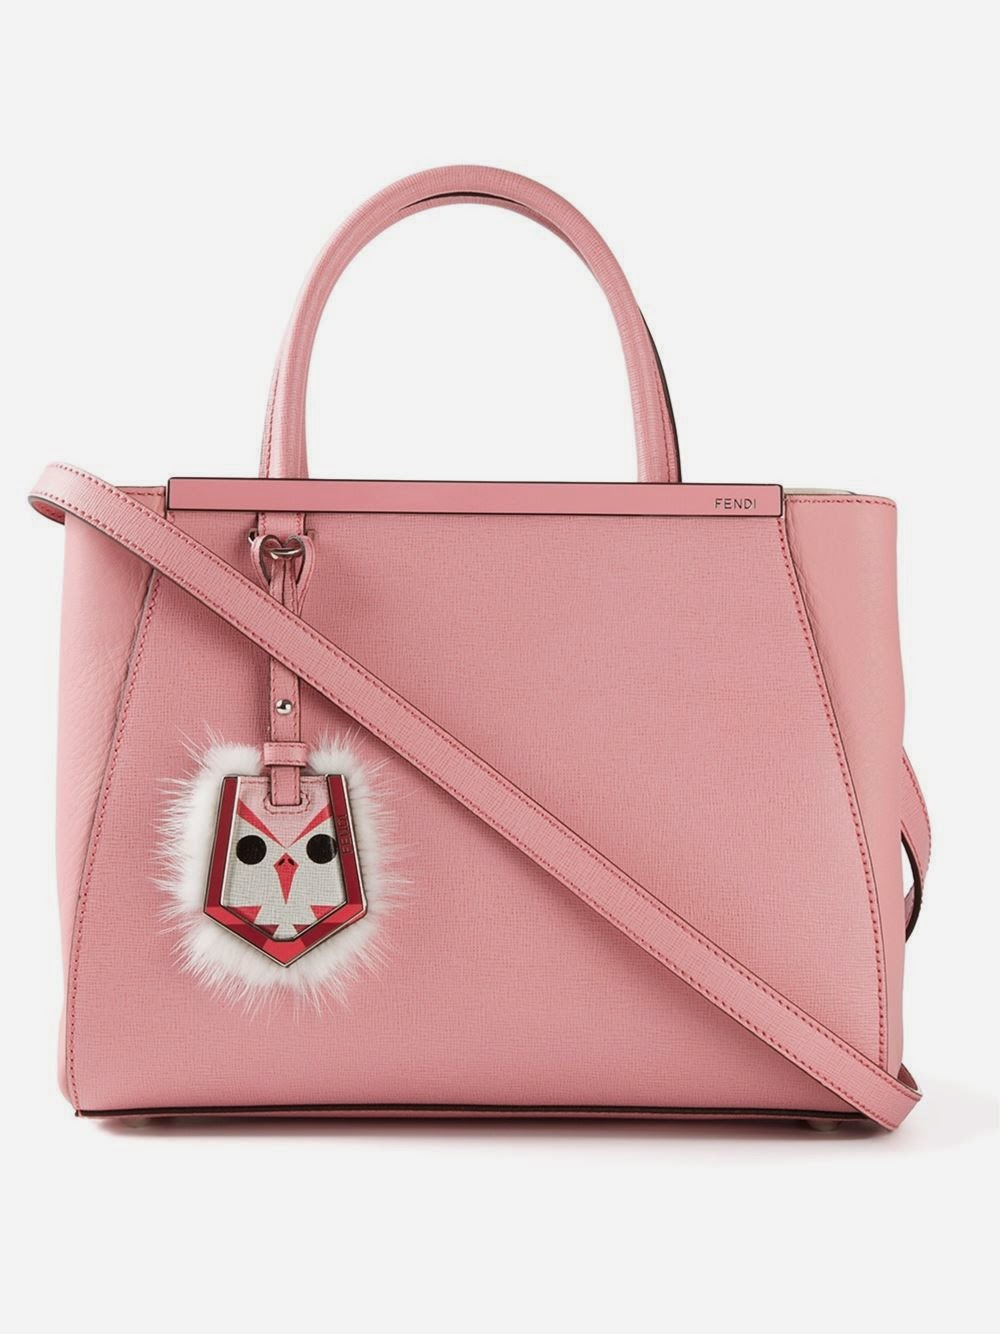 Fendi 2jours bag in pink with fur charm 4220c08d0a81